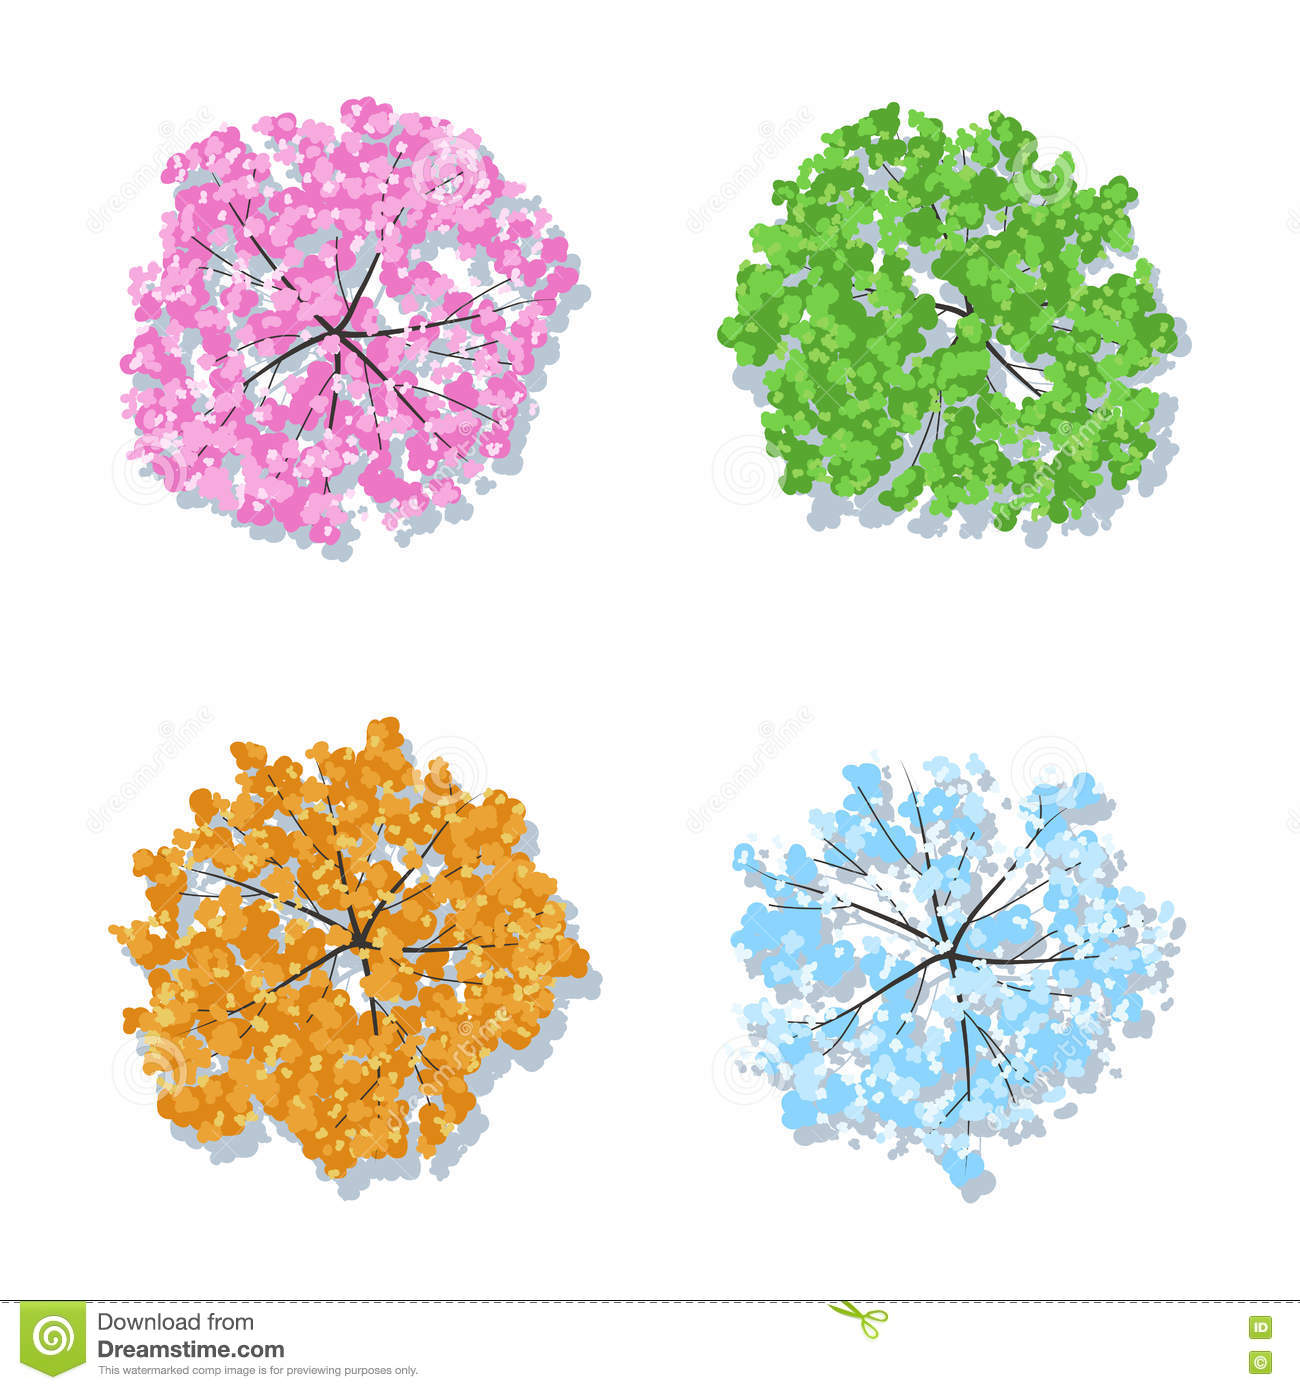 Four seasons trees spring summer autumn winter stock vector image 71499950 - Autumn plowing time all set for winter ...